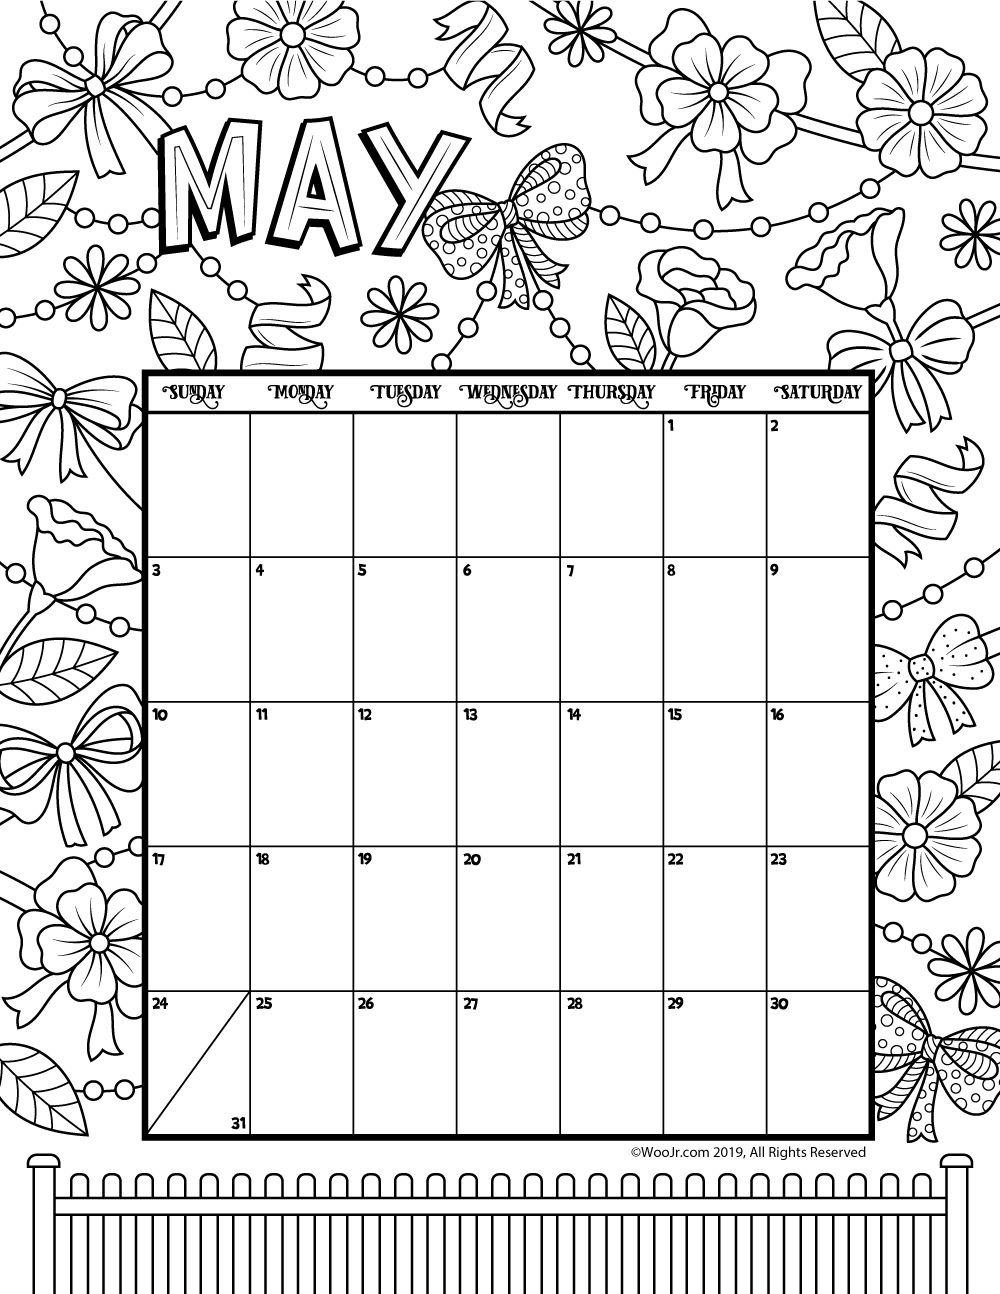 May 2020 Coloring Calendar Coloring calendar, Kids